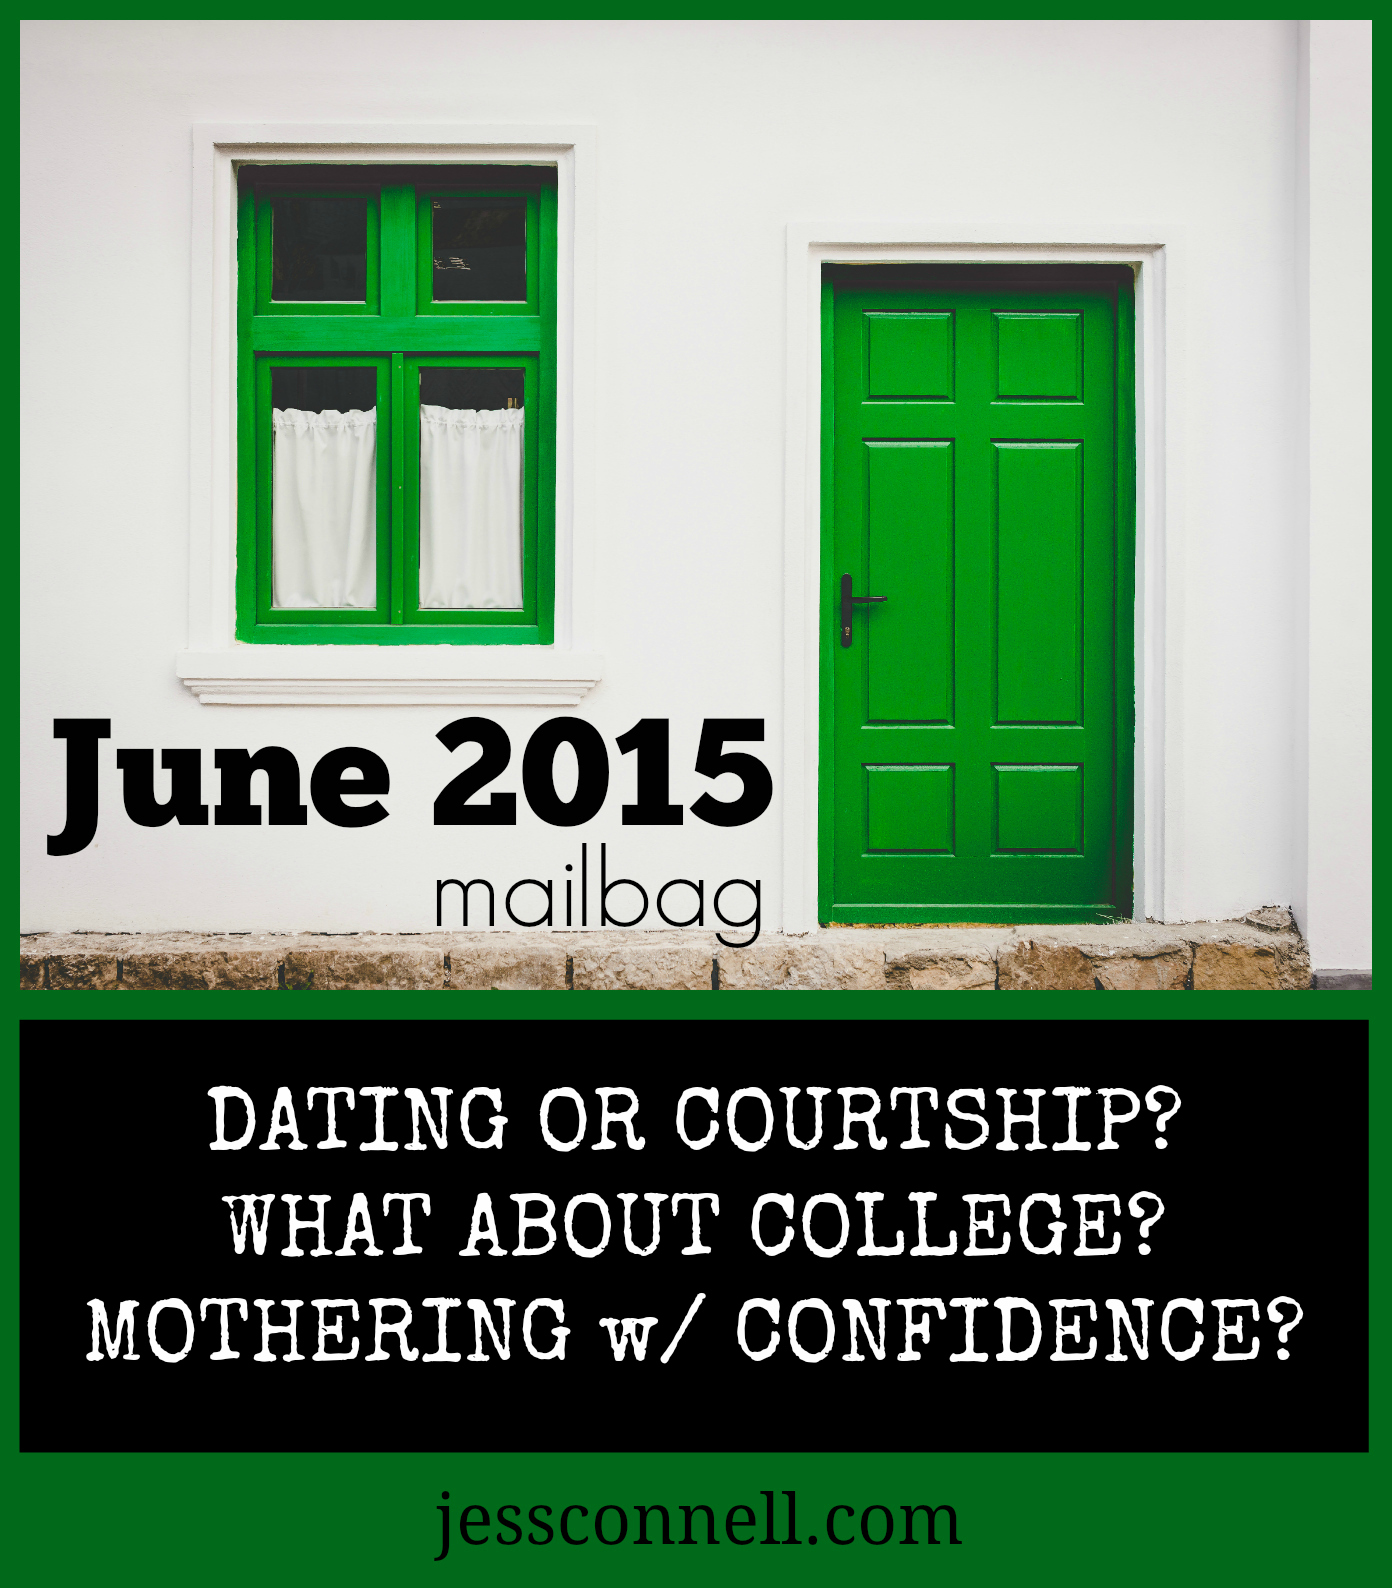 JuneMailbag: Dating or Courtship? What About College? Mothering w/ Confidence? // jessconnell.com